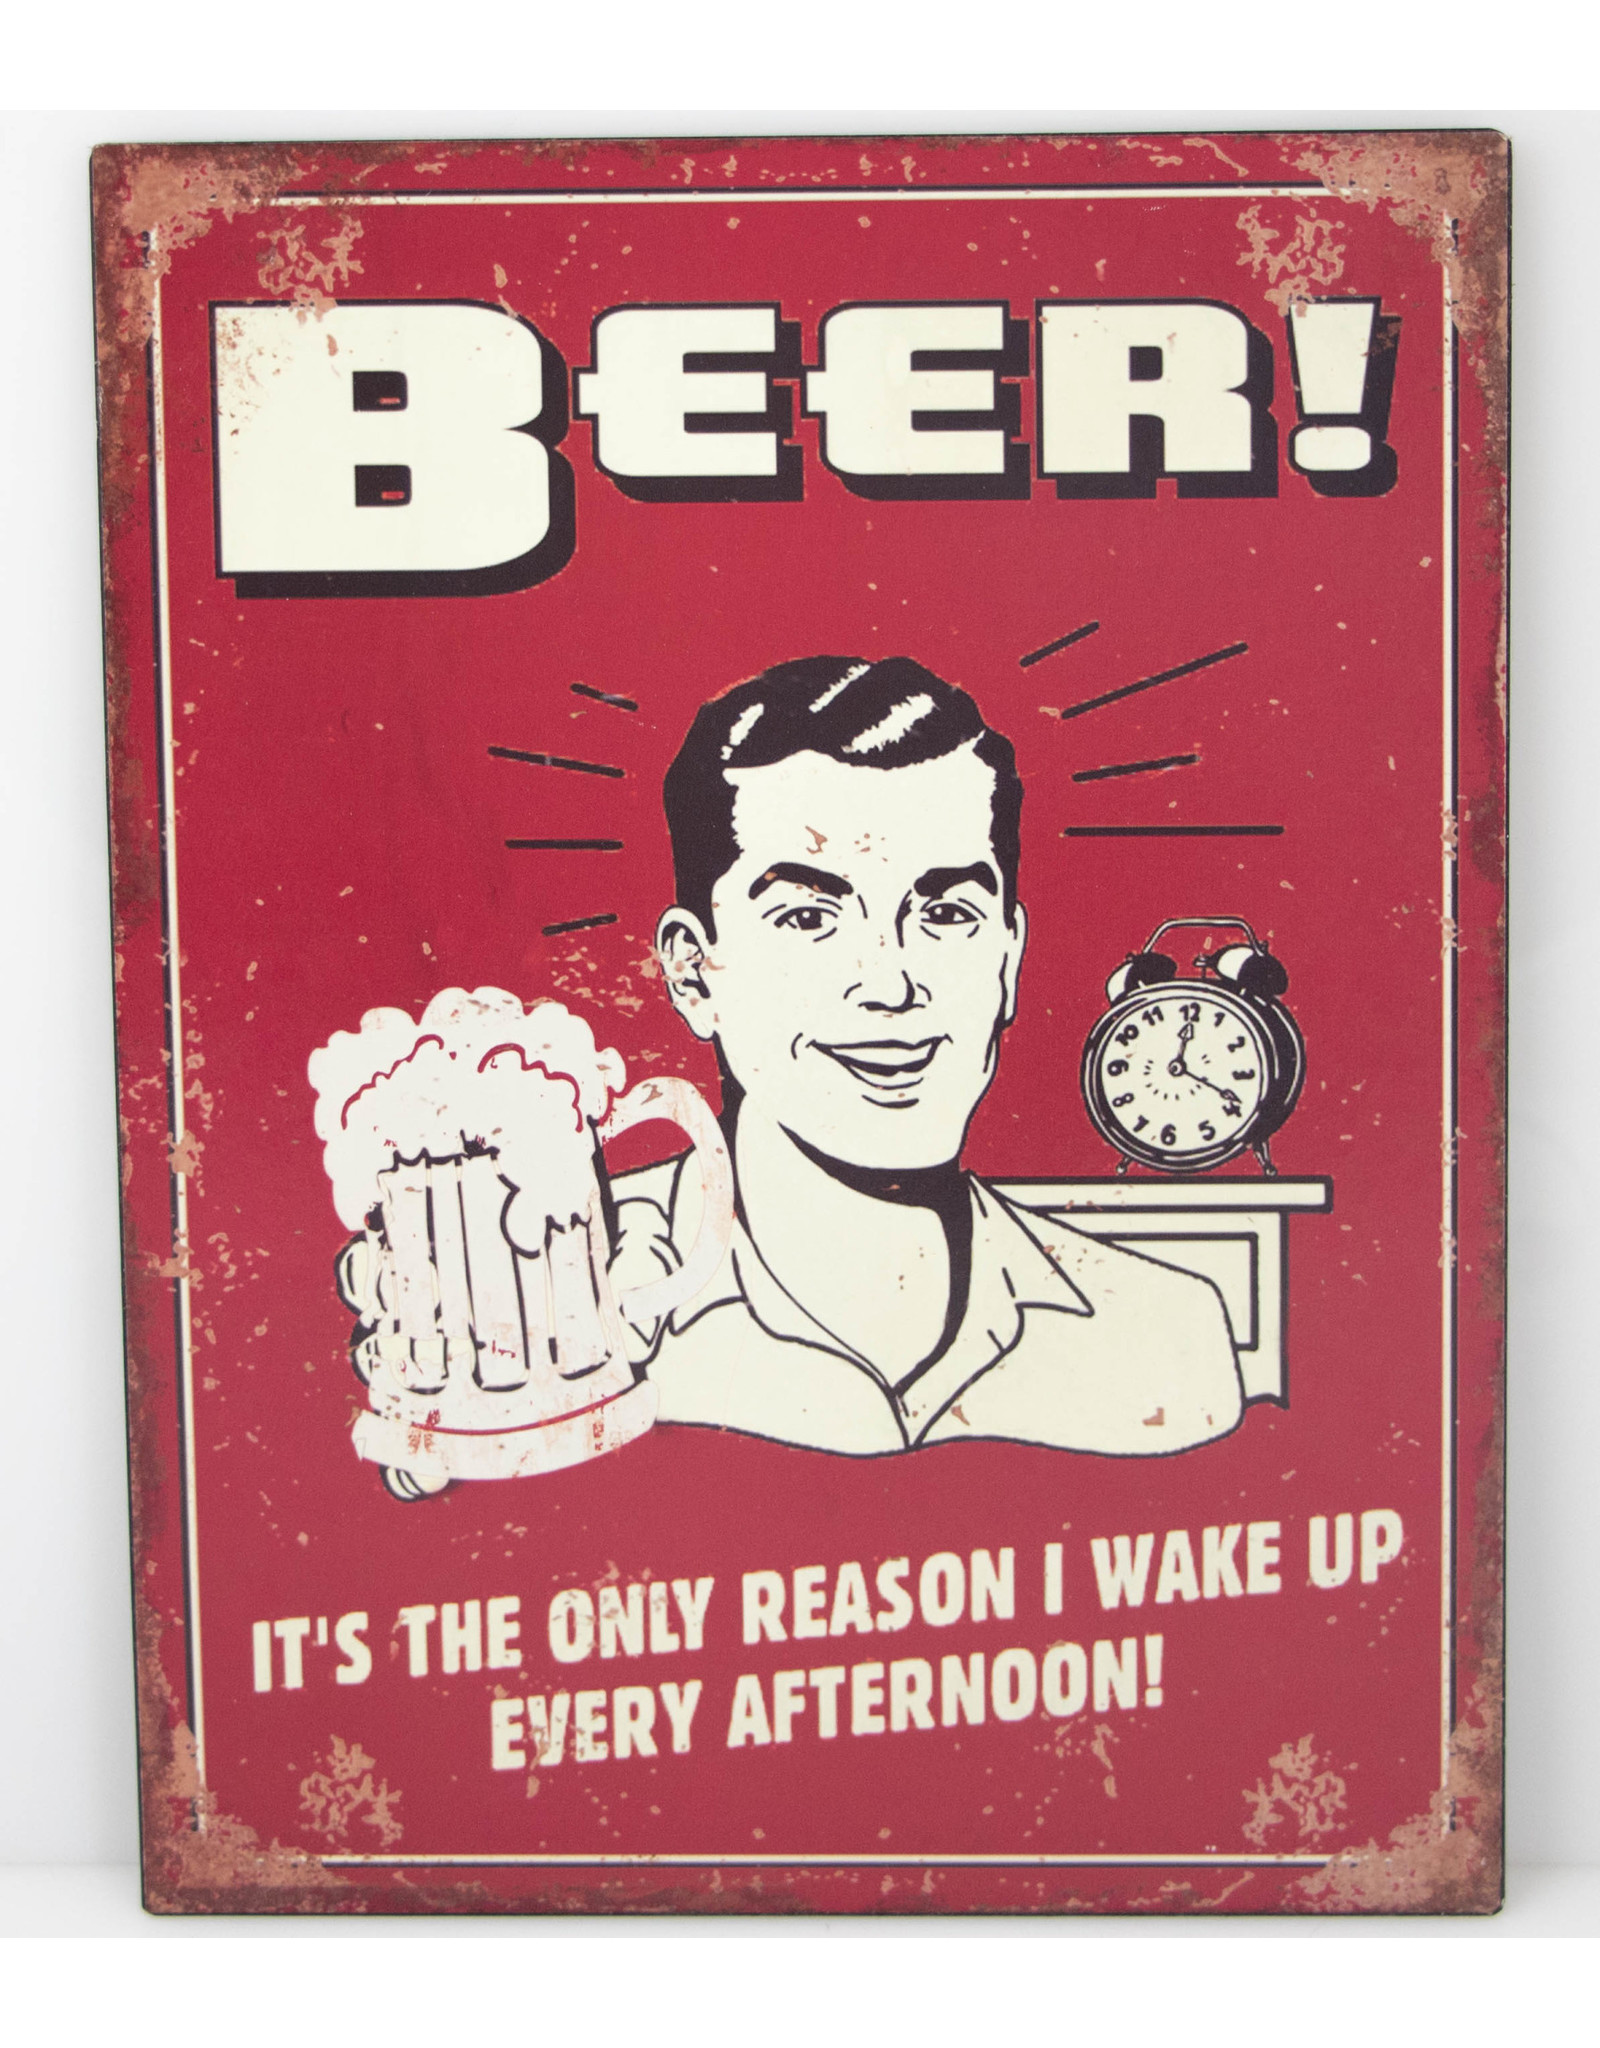 Beer only reason to wake up